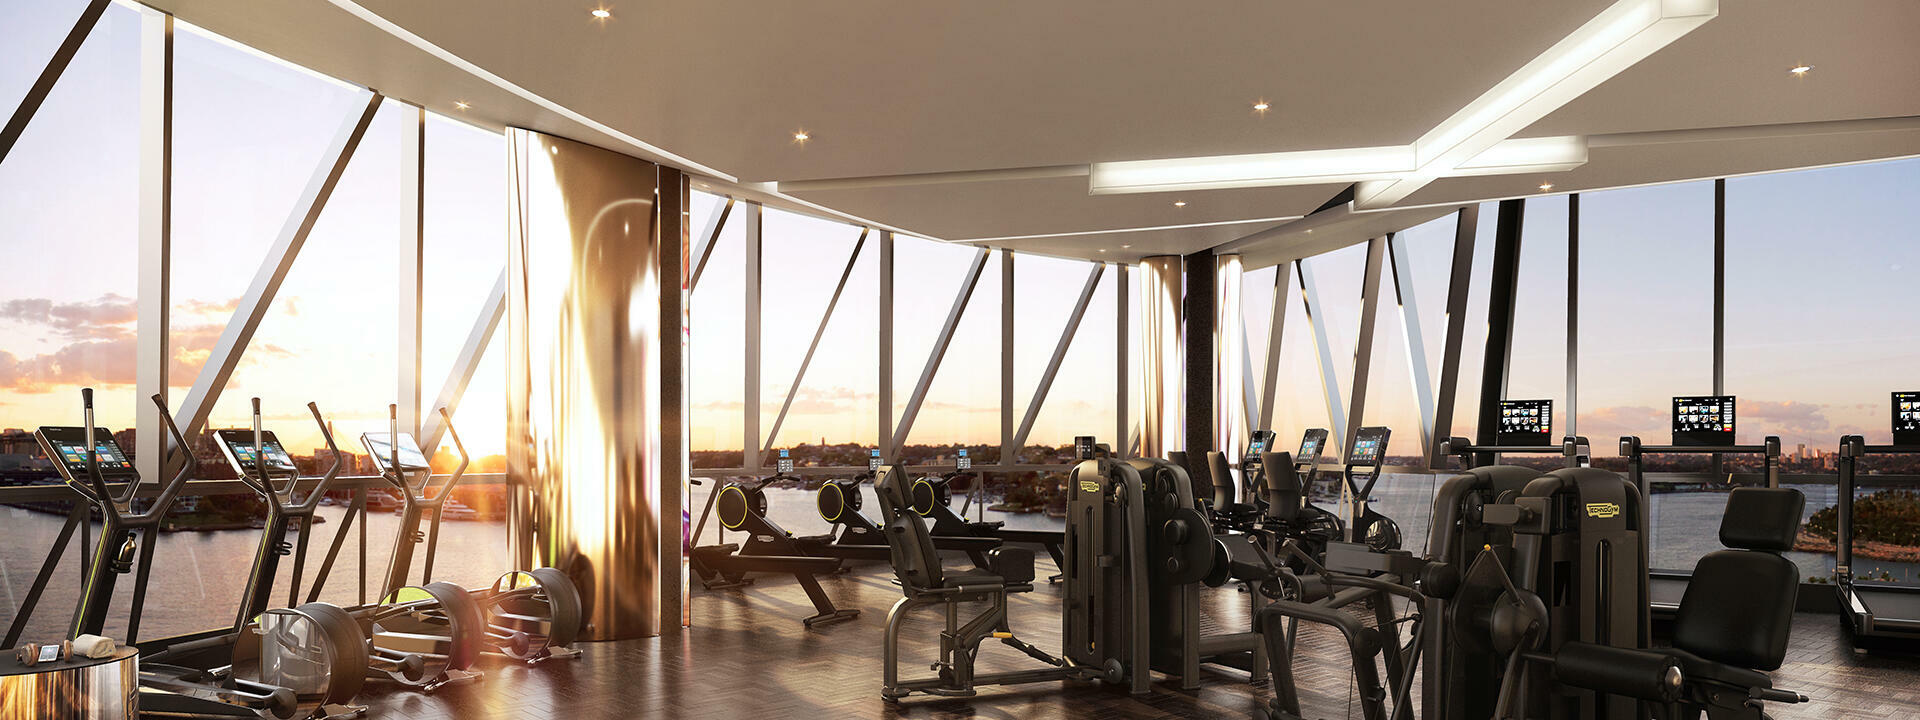 Fitness center with city view at Crown Towers Sydney